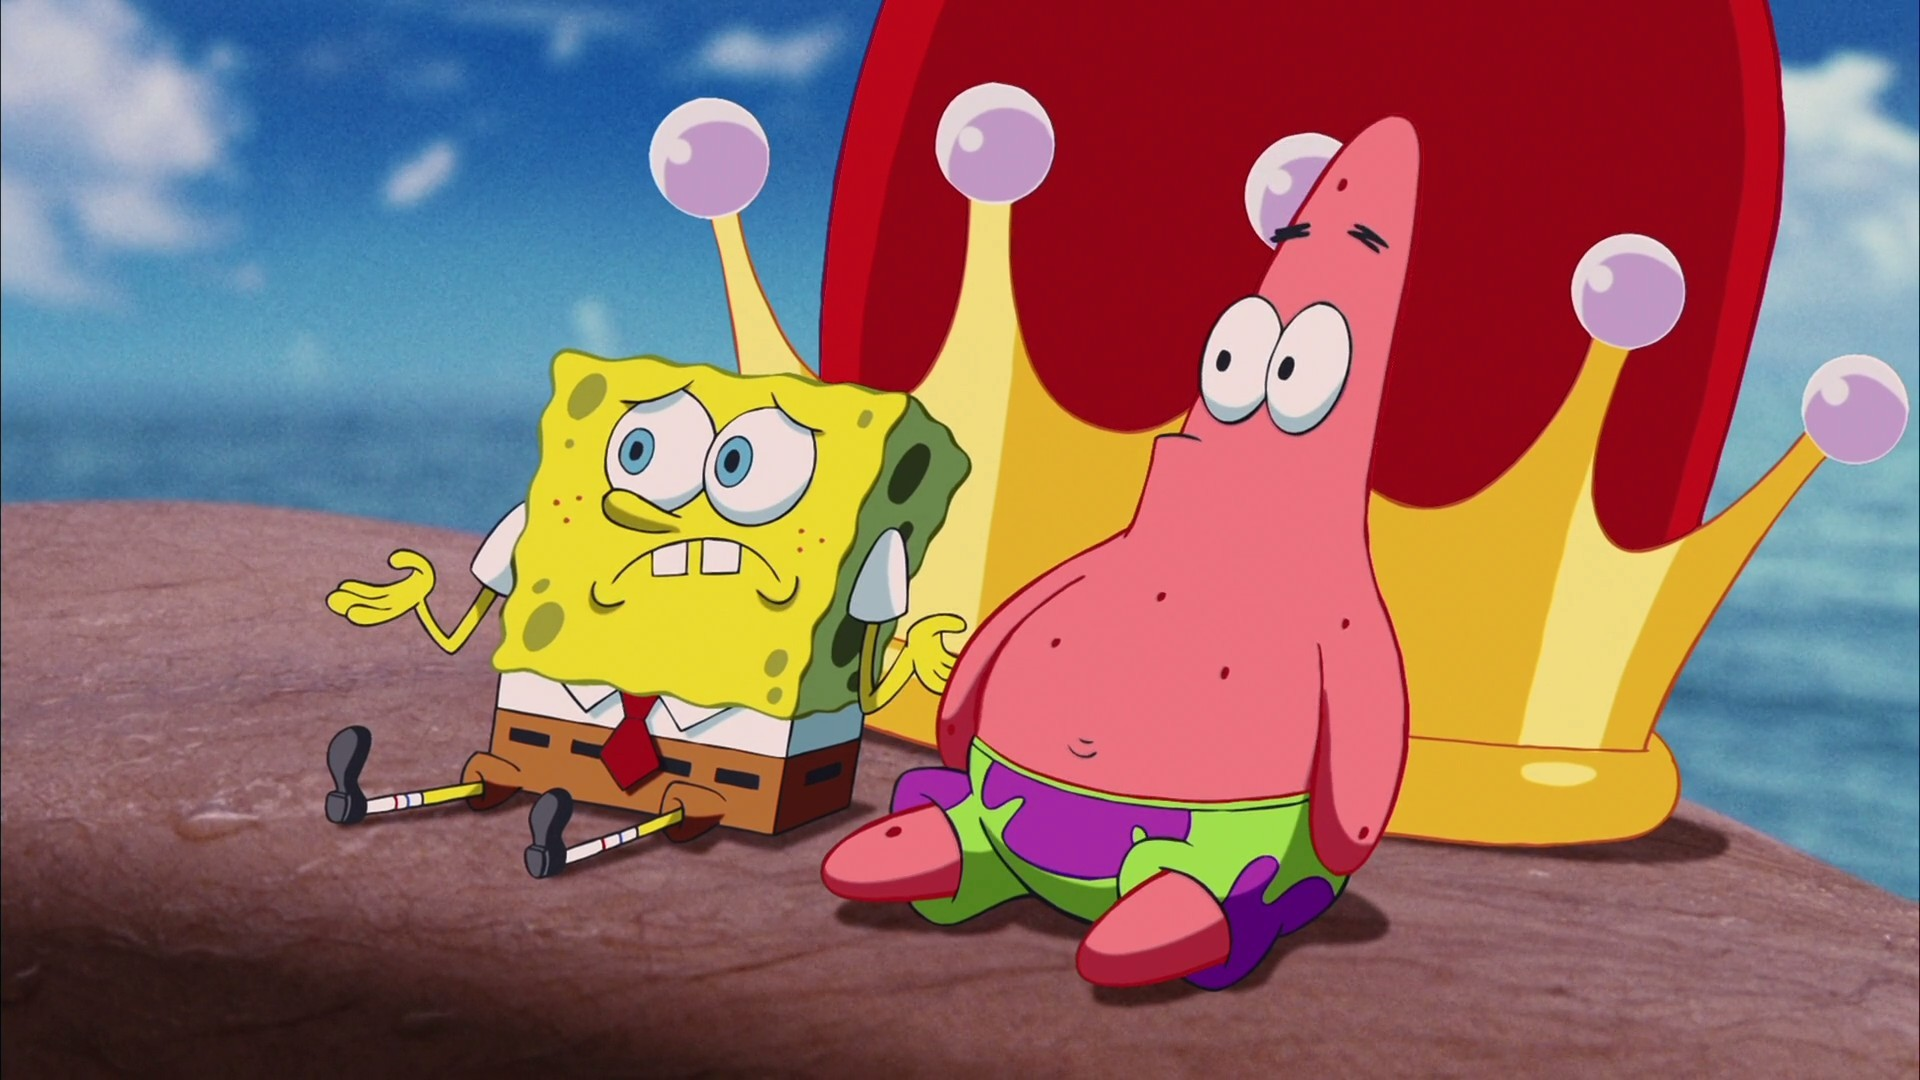 … spongebob and patrick wallpaper hd backgrounds hd wallpapers …